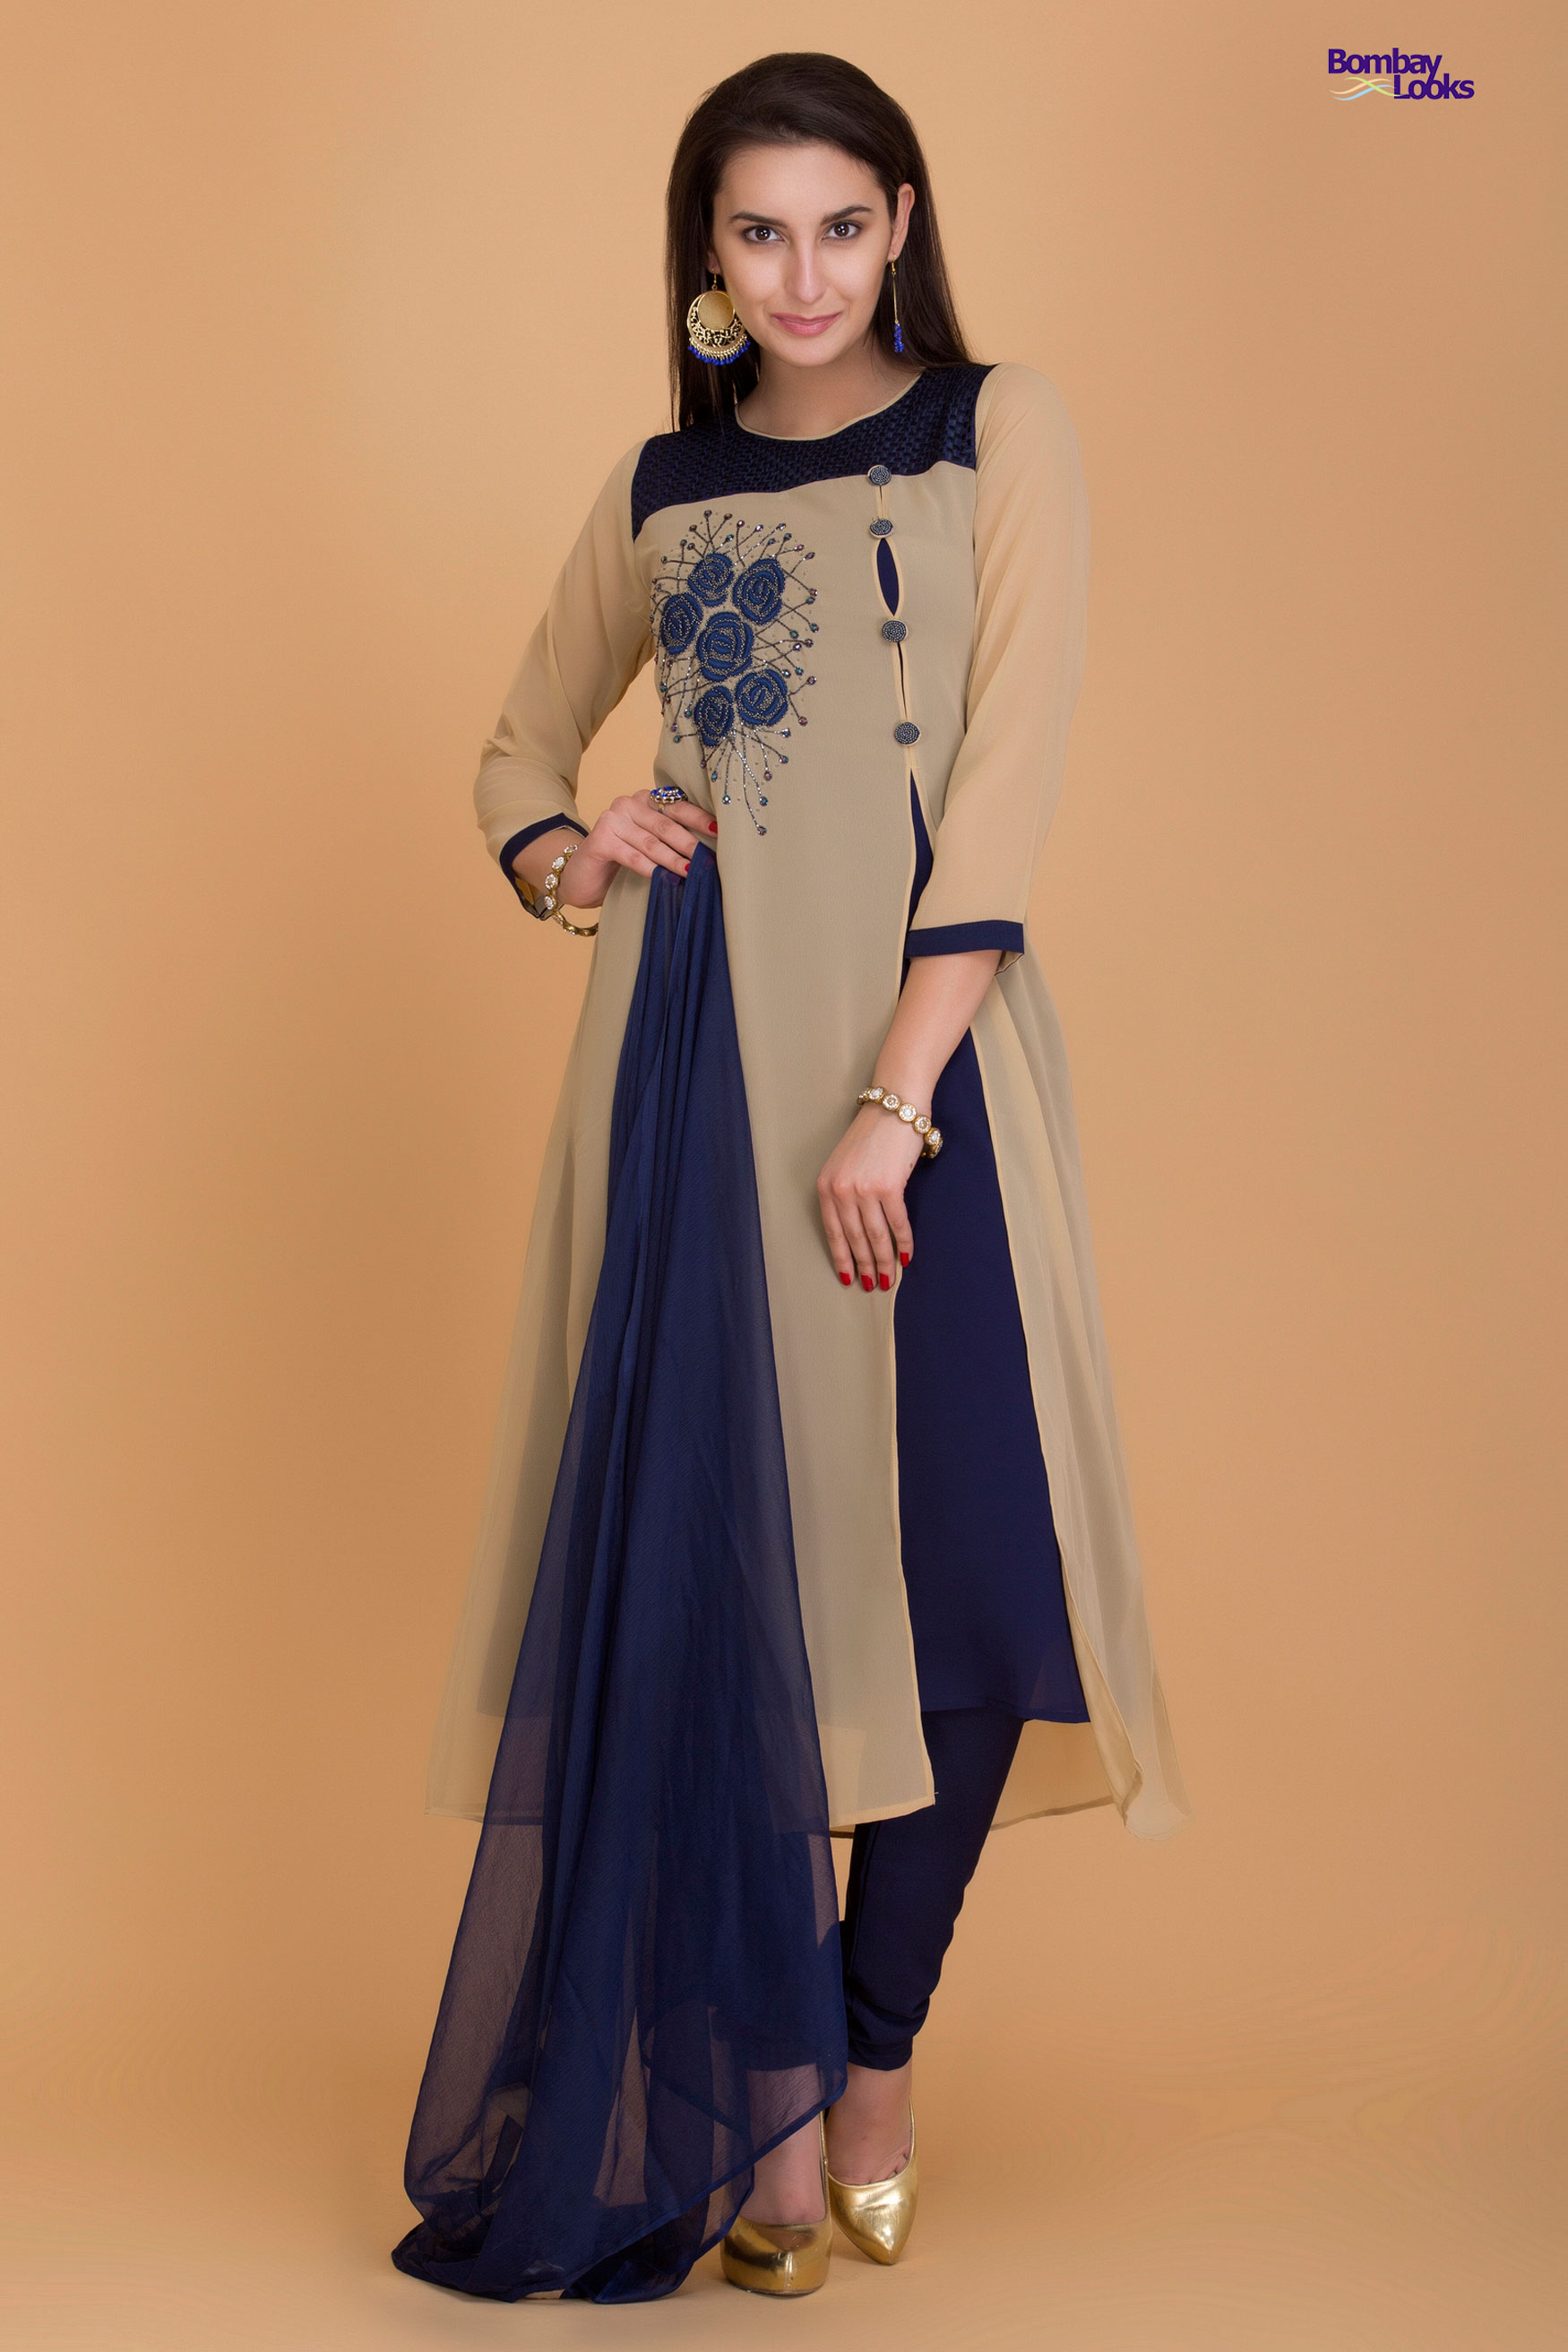 Smart split suit in beige and navy blue with delicate floral embroidery